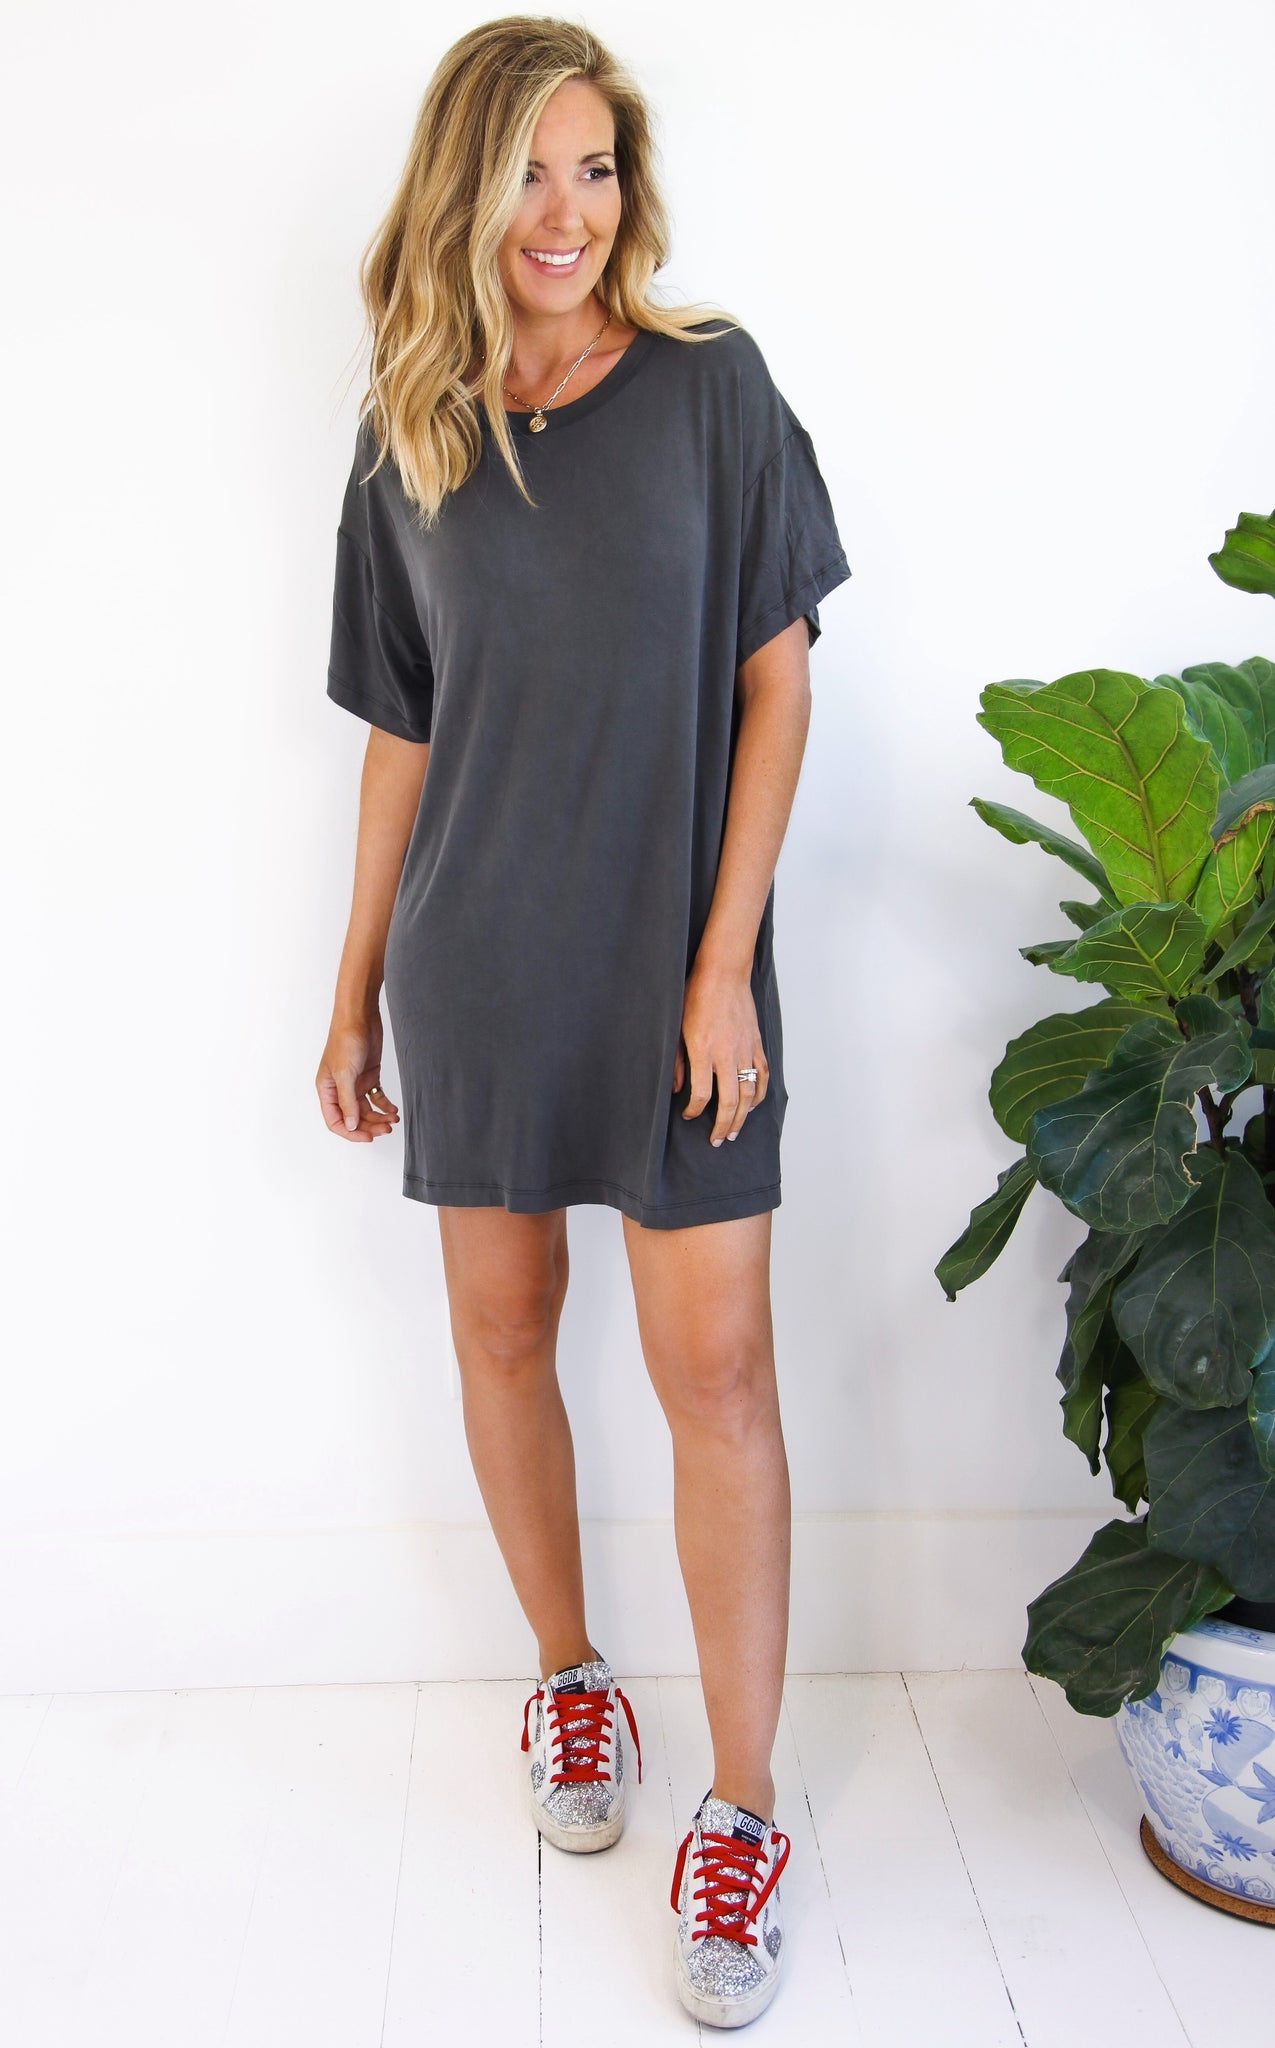 ELLE LAIN - WASHED JERSEY DRESS - GREY